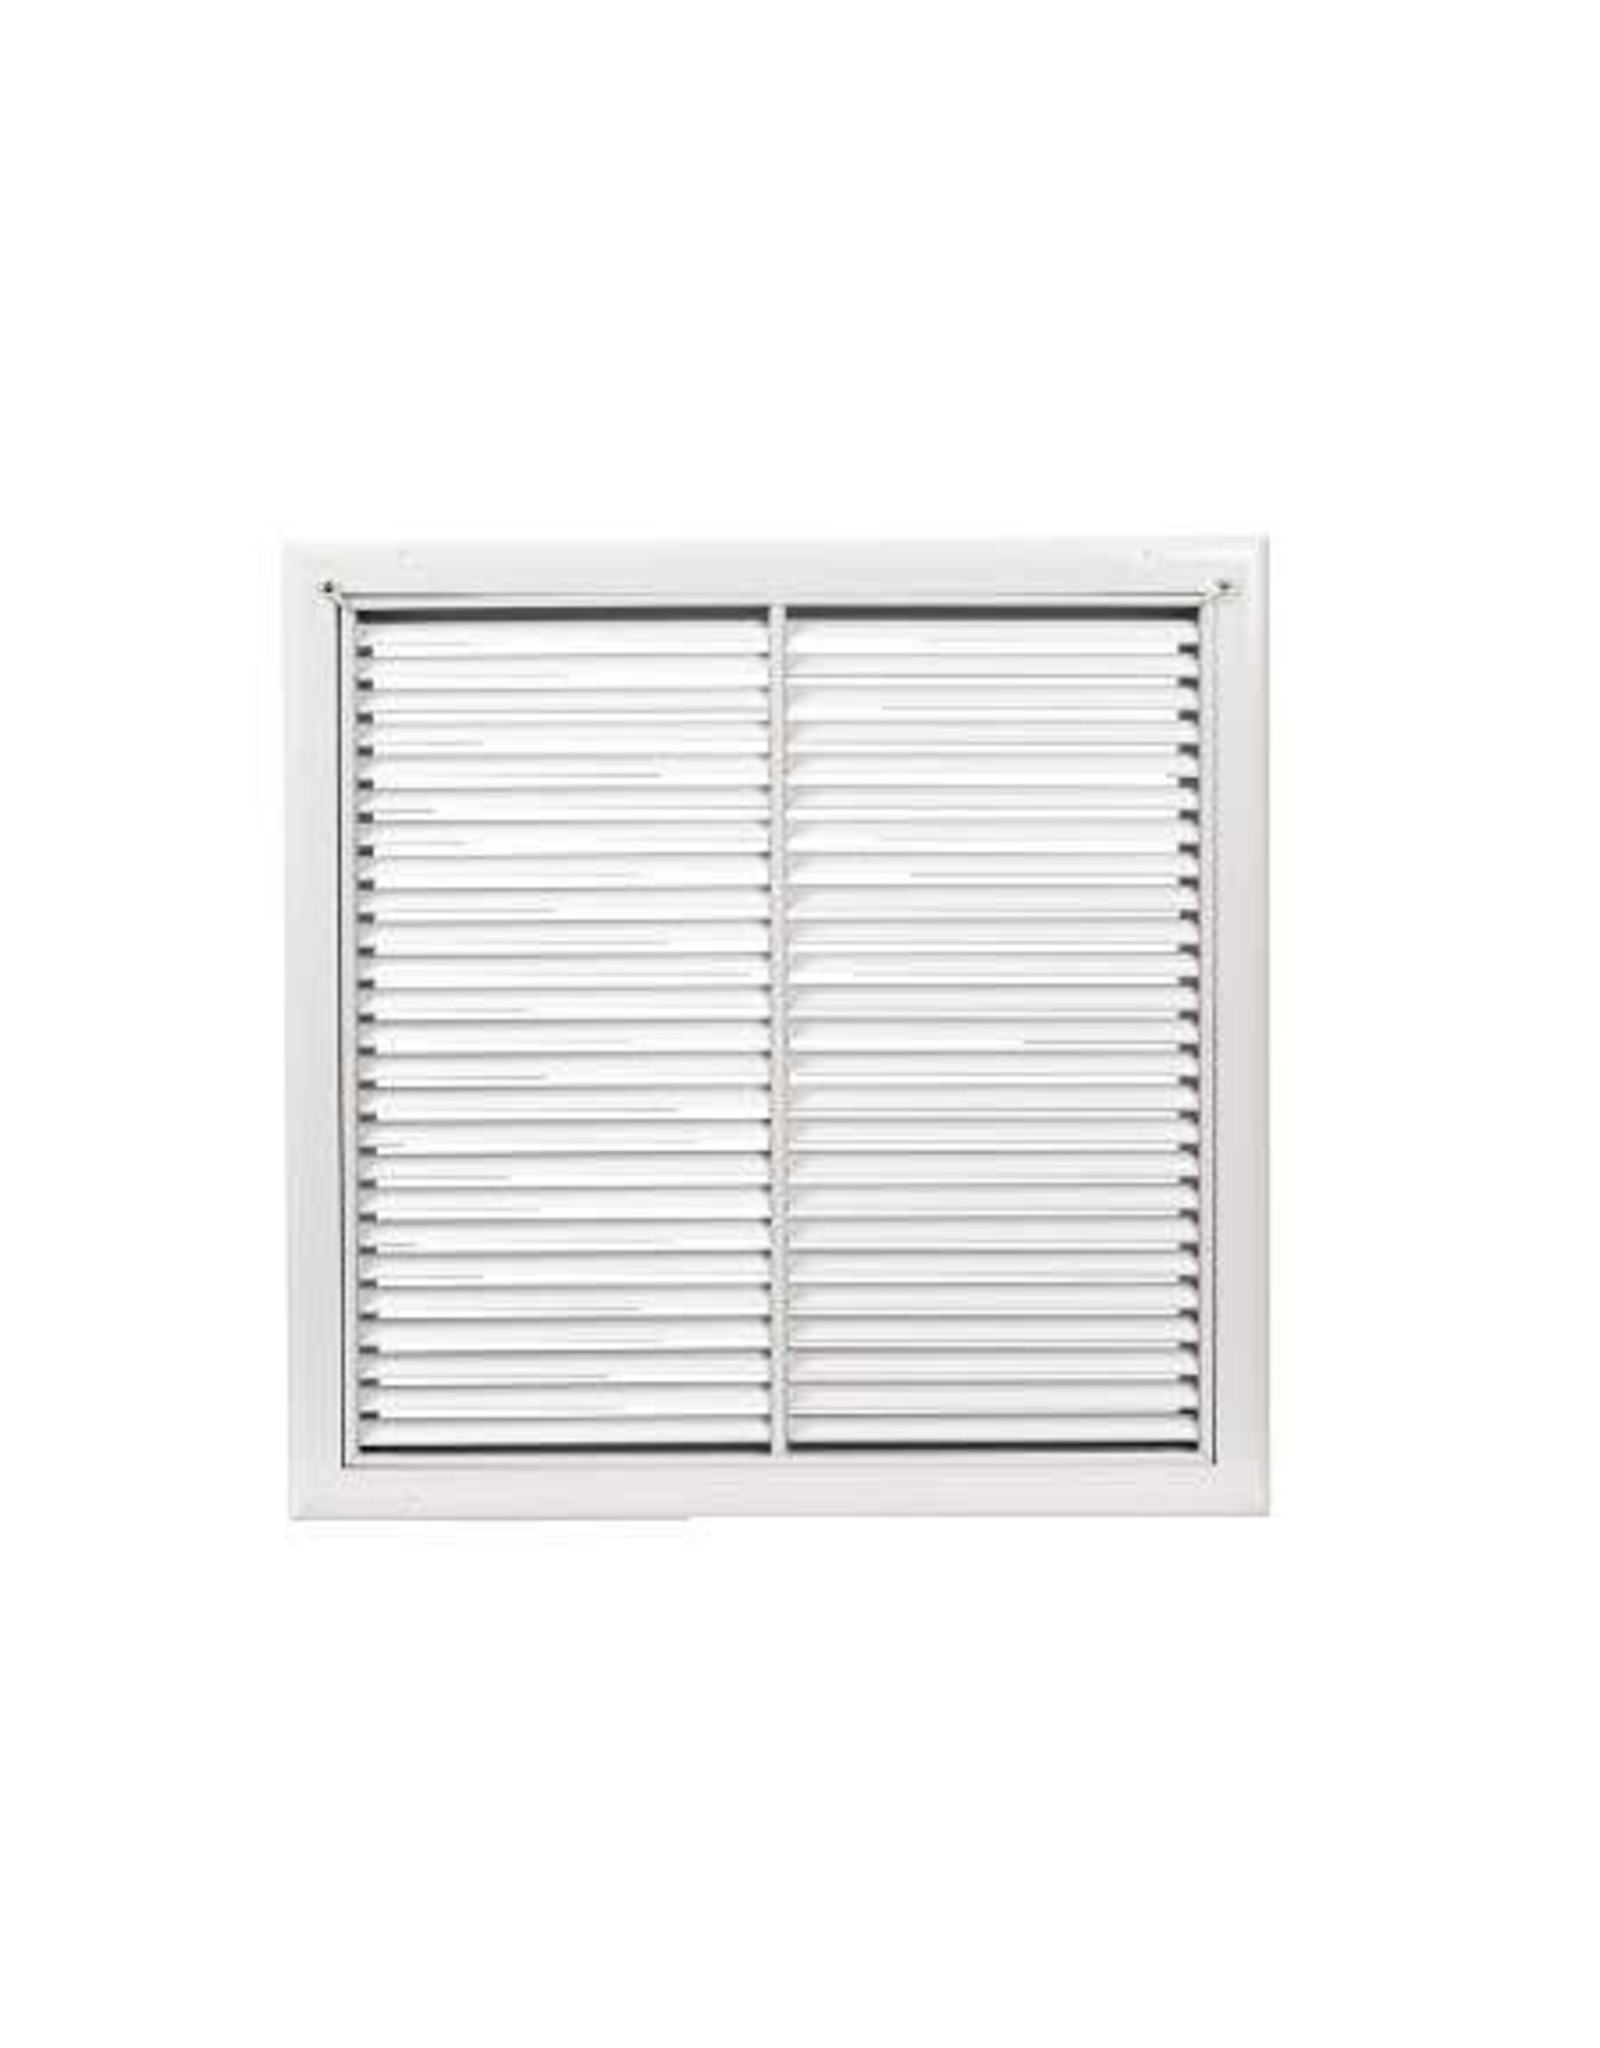 AirGuide Manufacturing LLC Return Filter Grille with 38° fixed blades for duct size